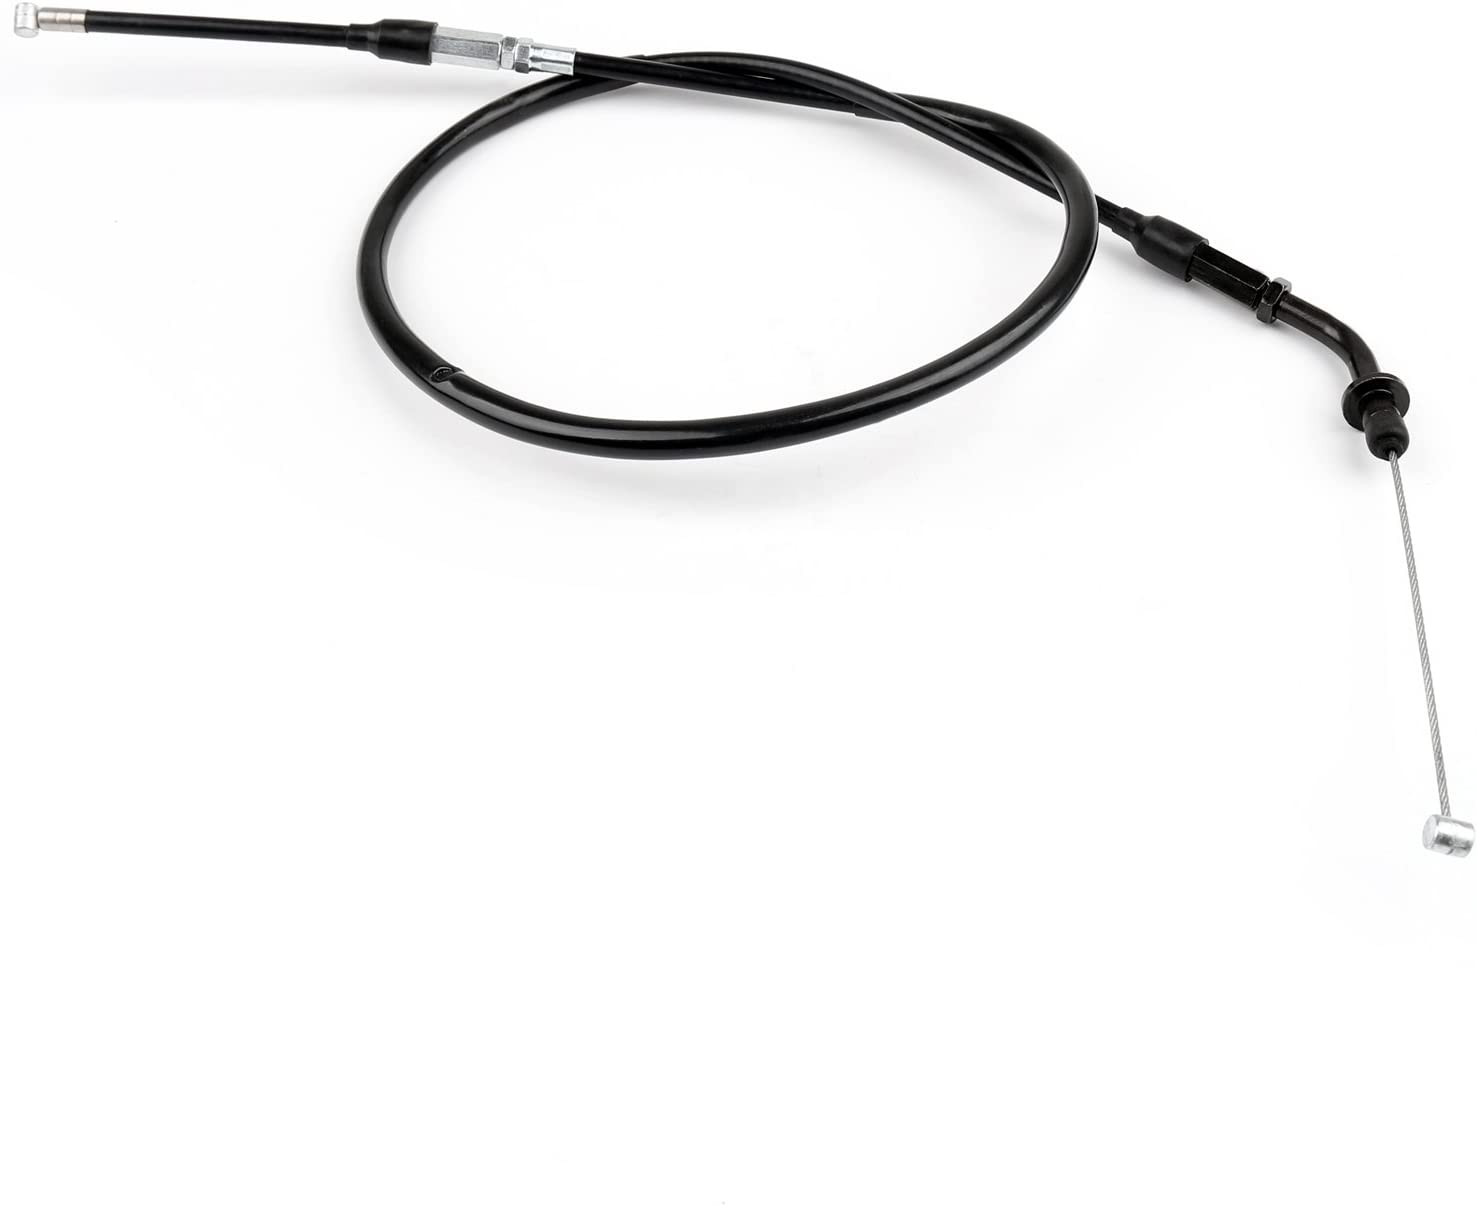 Areyourshop Clutch Cable Replacement 4KA-26335-10 For Yamaha XJ600N Diversion Naked 96-03